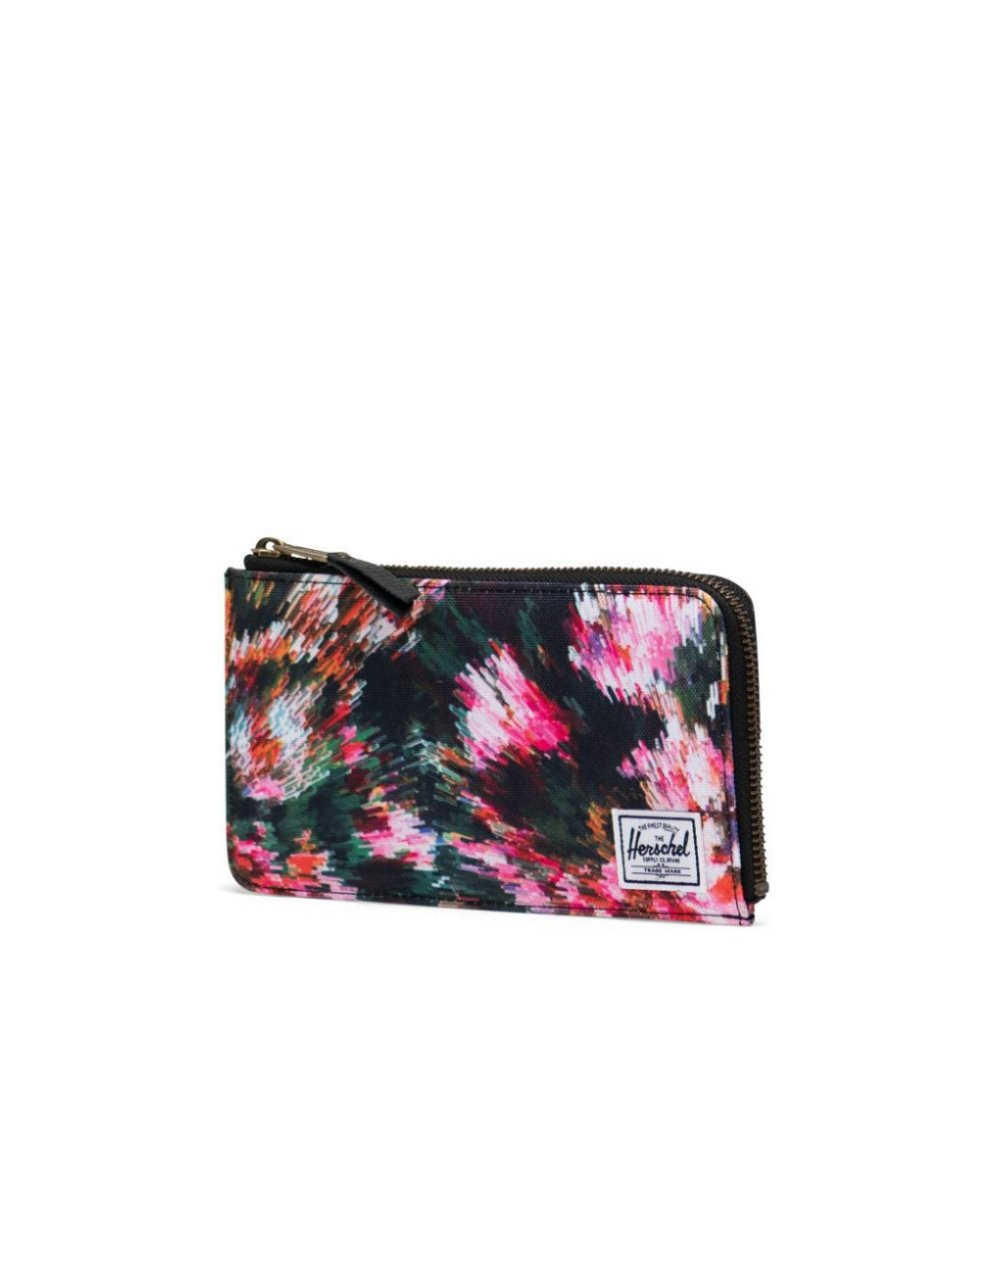 Herschel Supply Co Jack Large RFID (10808-04504) Pixel Floral